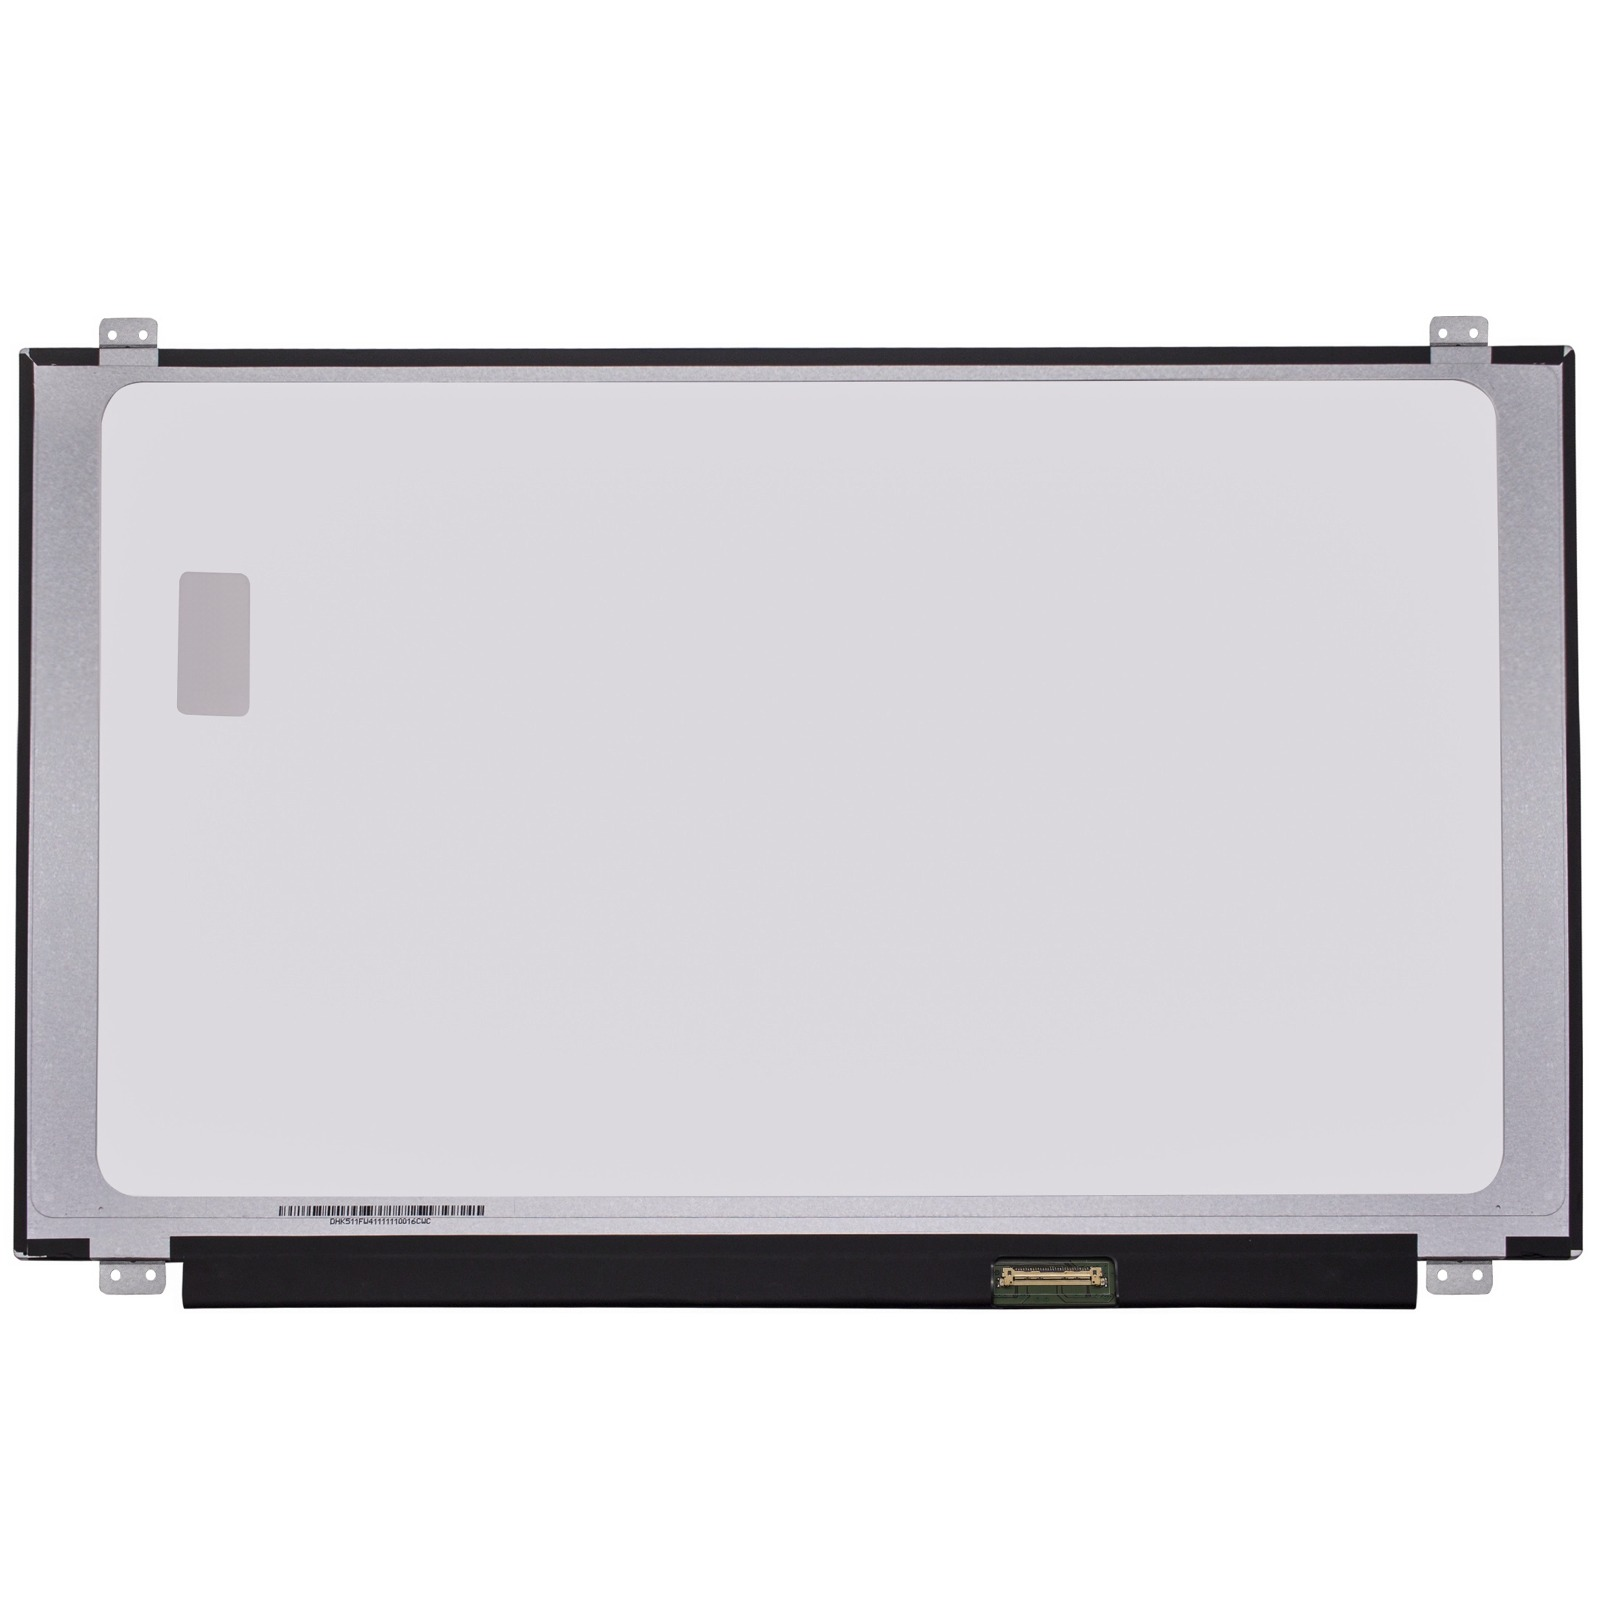 Laptop Acer Aspire E1522 series Replacement 156034 LED Screen New - GB, United Kingdom - Laptop Acer Aspire E1522 series Replacement 156034 LED Screen New - GB, United Kingdom